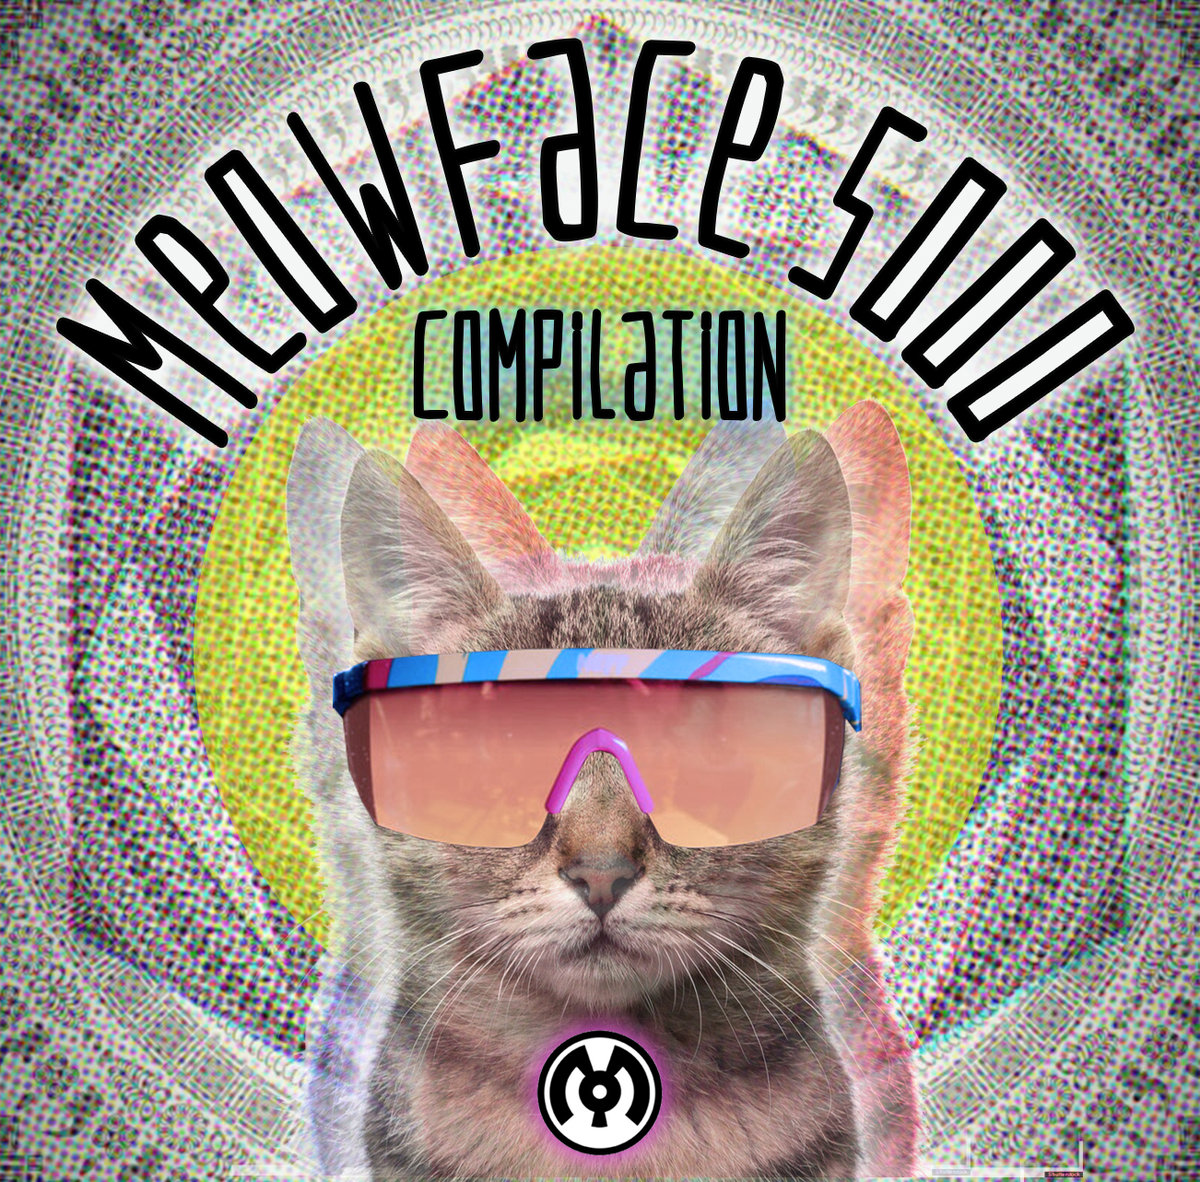 TMPLZ - FOOL @ 'MeowFace 5000' album (electronic, dubstep)